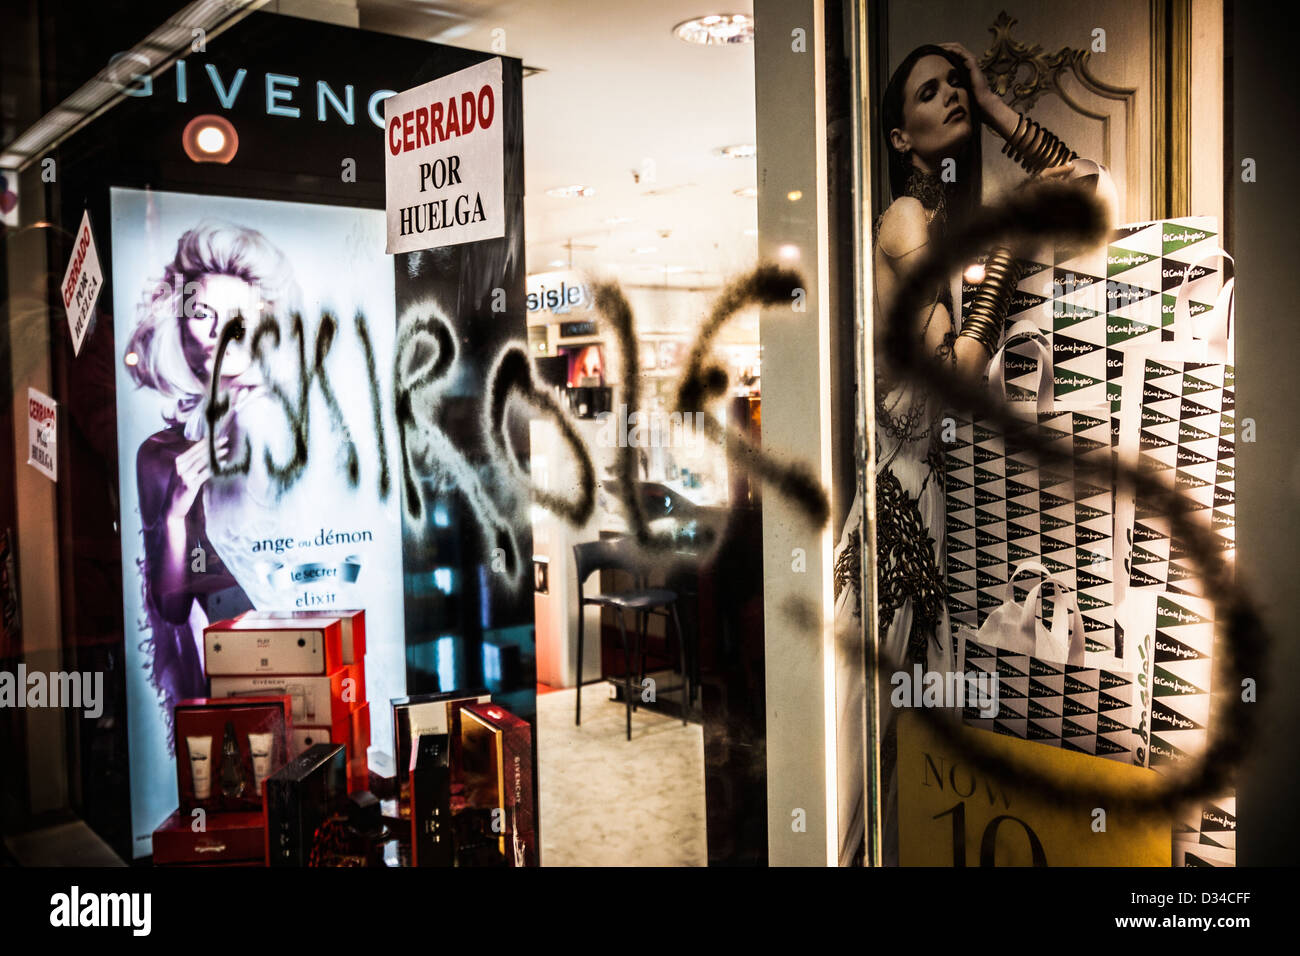 Graffiti reading 'Esquiroles' (blacklegs) on the window of open big department store during general strike - Stock Image